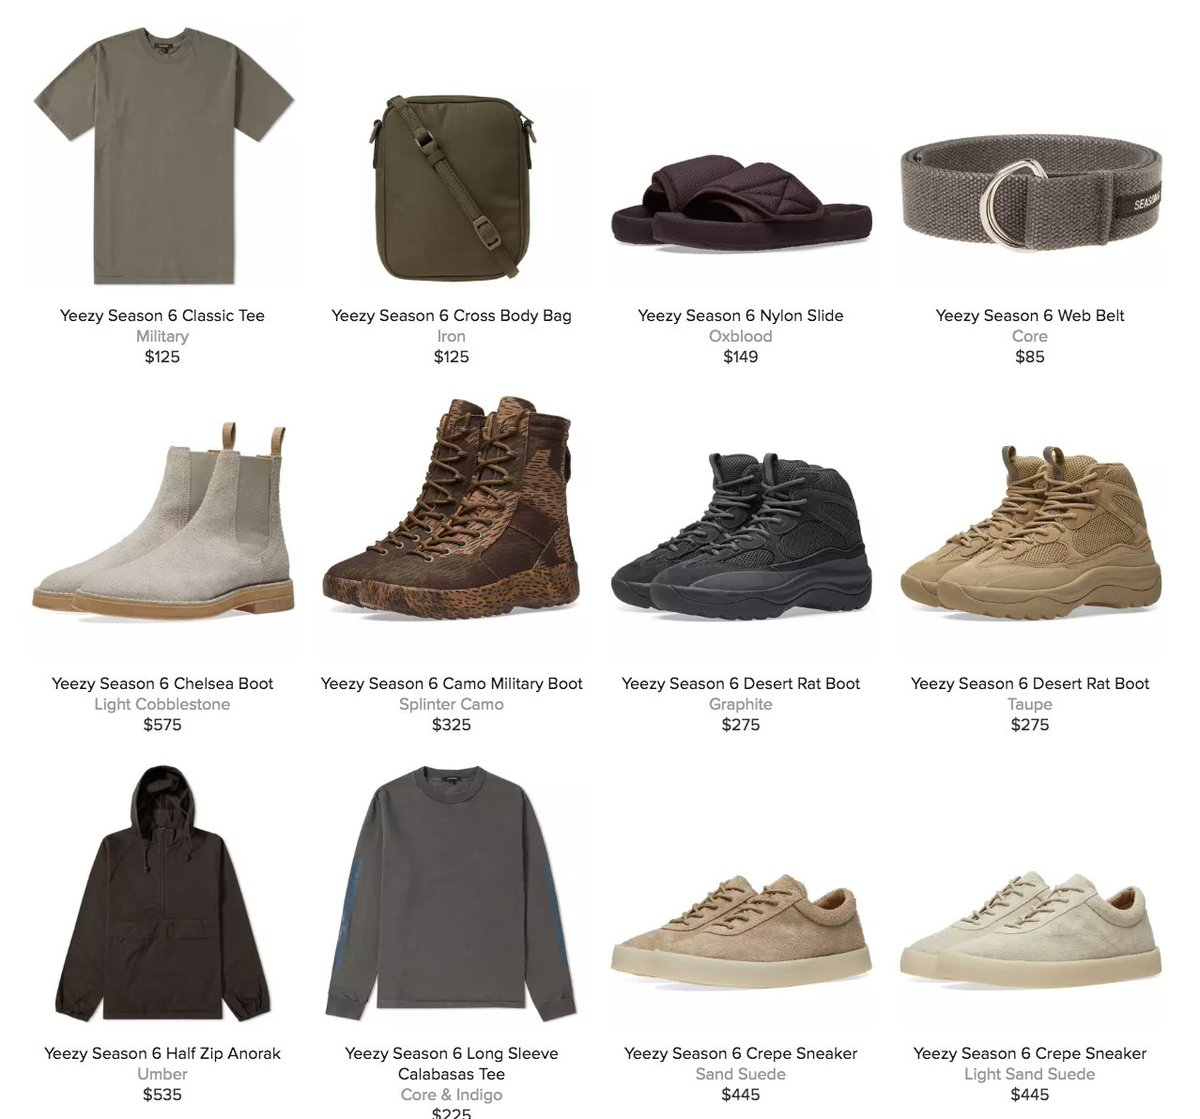 0eab8a21ed27c 25% off Yeezy Season 6 Collection with code VIPSALE at checkout     http   bit.ly 2kRO6sK pic.twitter.com yLbb9T6X2t